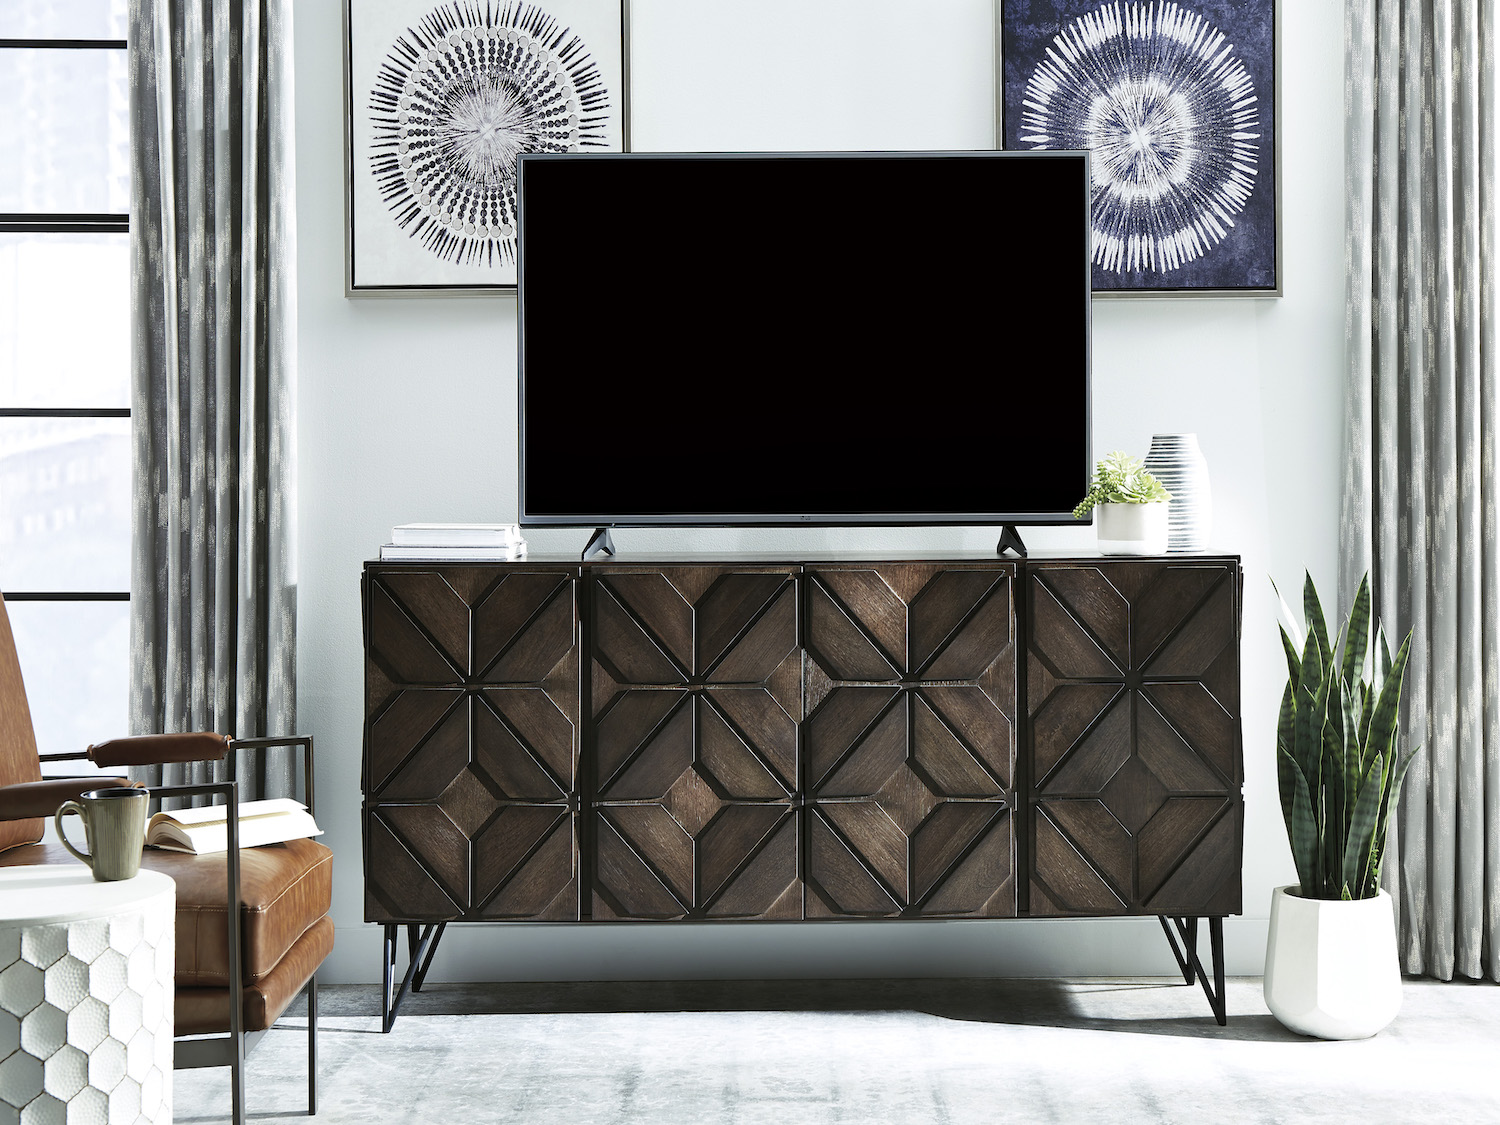 Chasinfield TV Stand, W648, TV Stand, Chasinfield TV Stand from Ashley by Midha Furniture serving Brampton, Mississauga, Etobicoke, Toronto, Scraborough, Caledon, Cambridge, Oakville, Markham, Ajax, Pickering, Oshawa, Richmondhill, Kitchener, Hamilton, Cambridge, Waterloo and GTA area